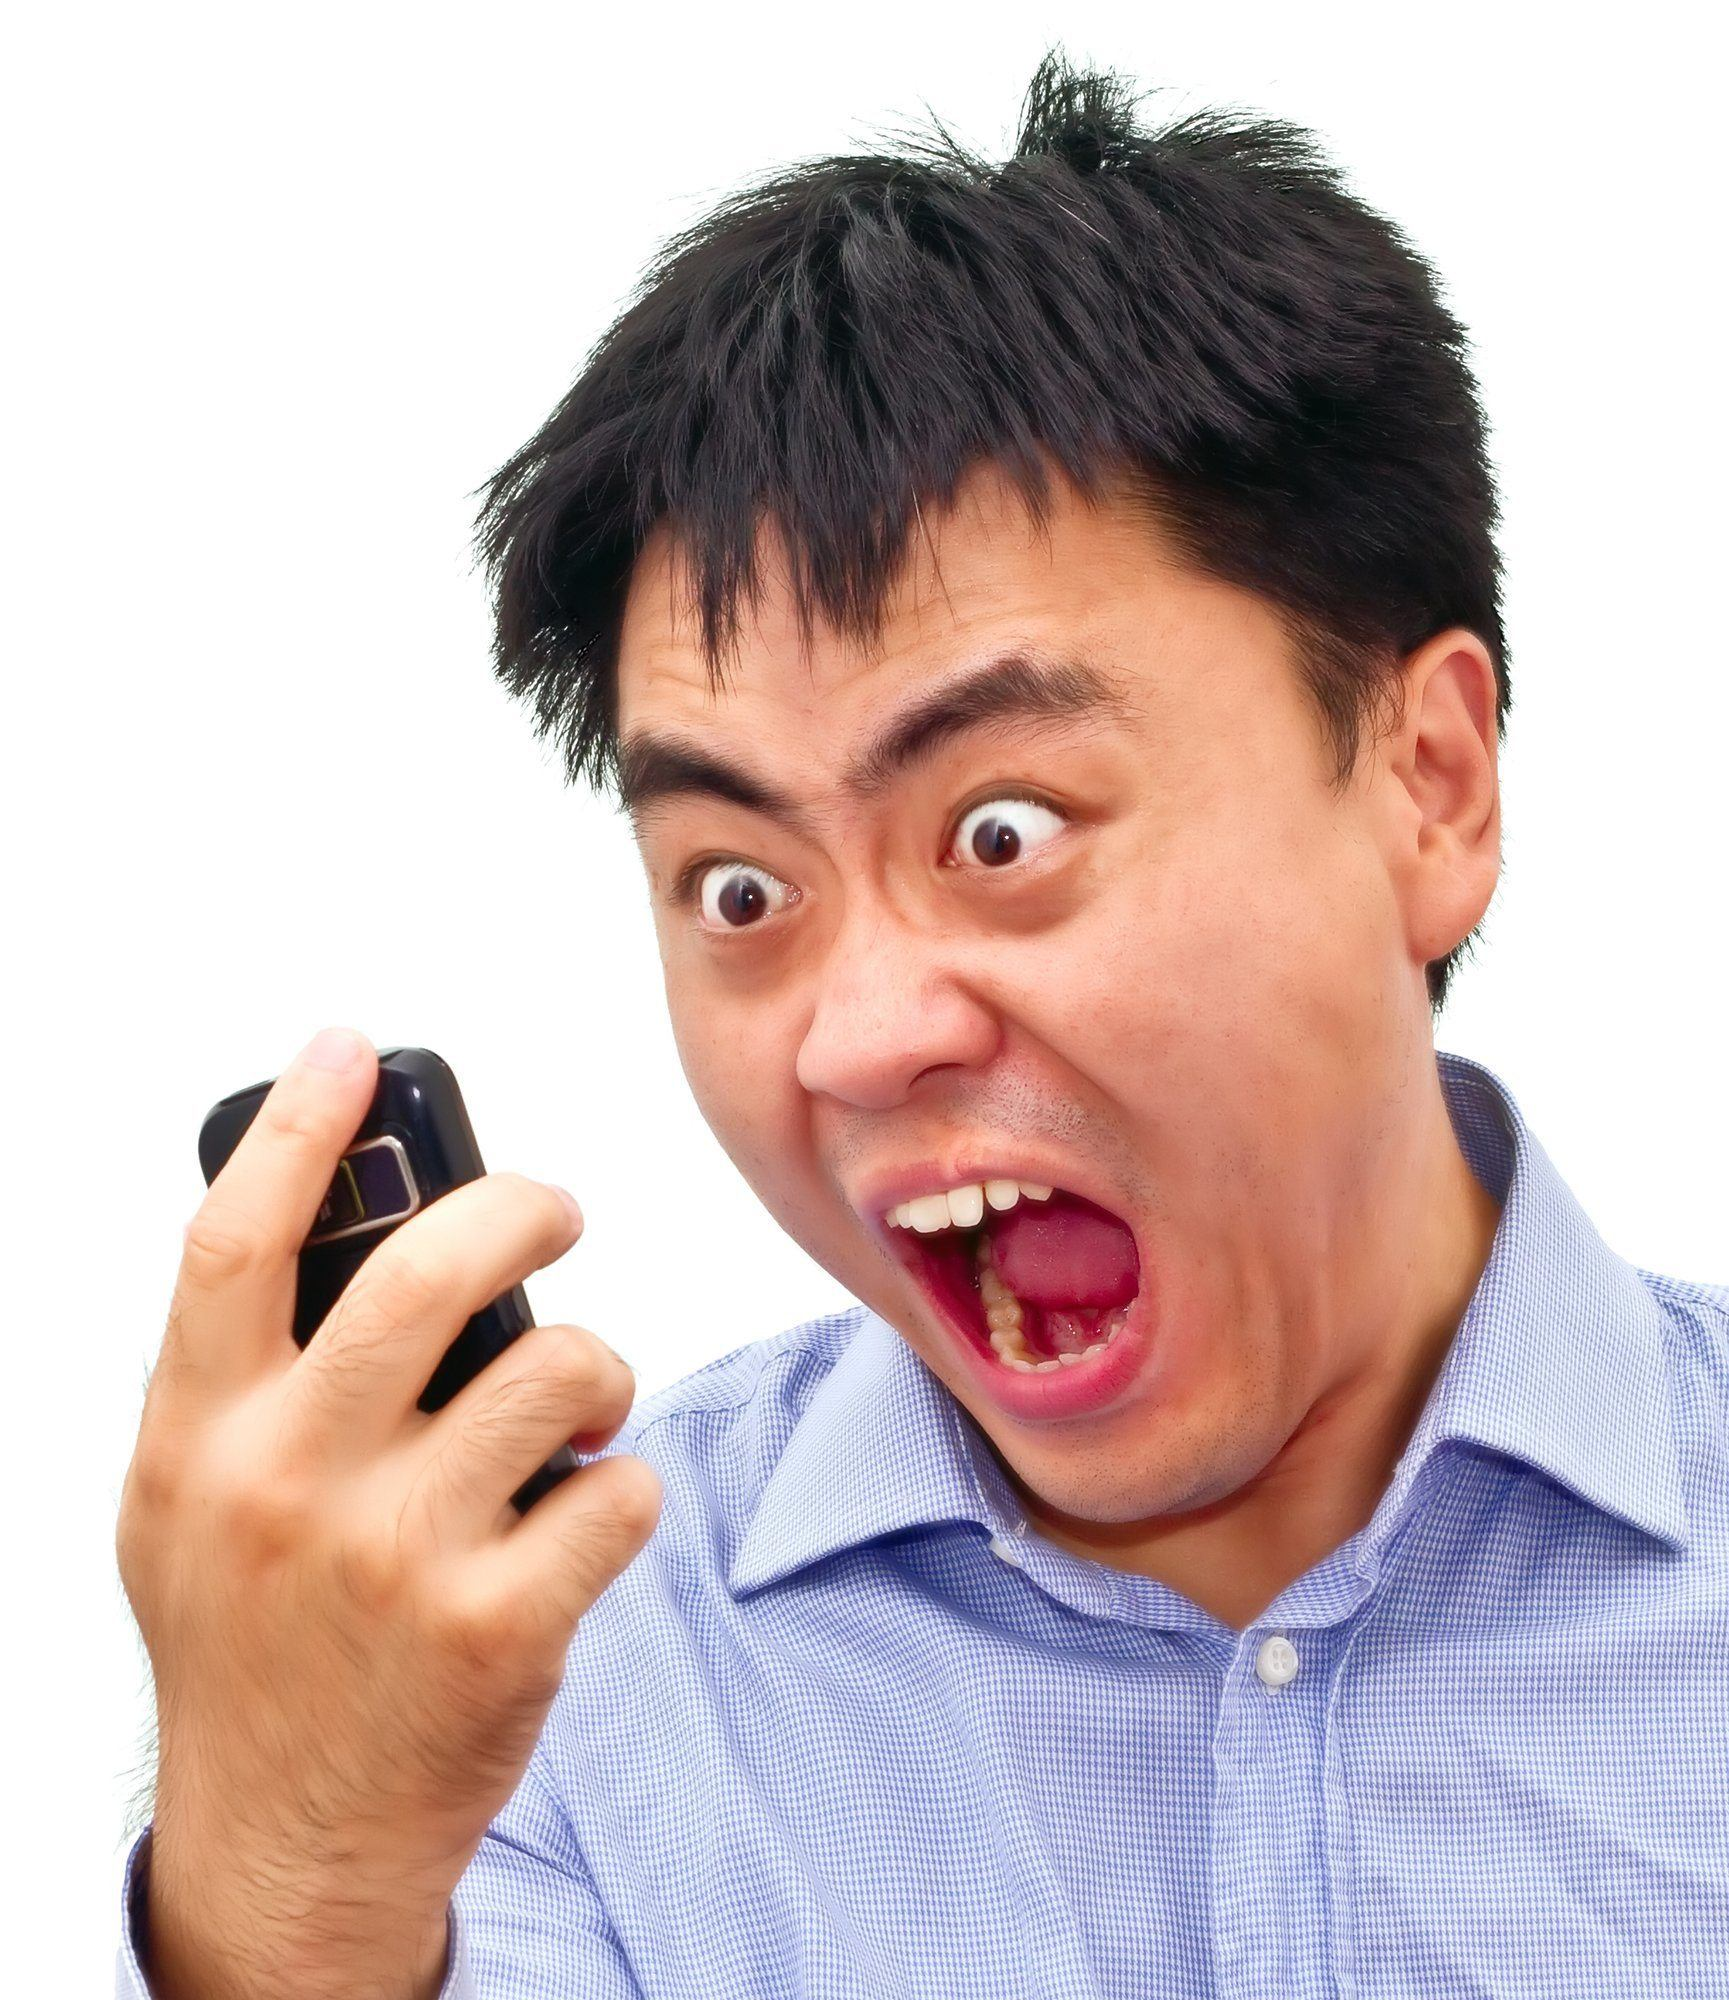 Crazy angry aian man yelling at phone